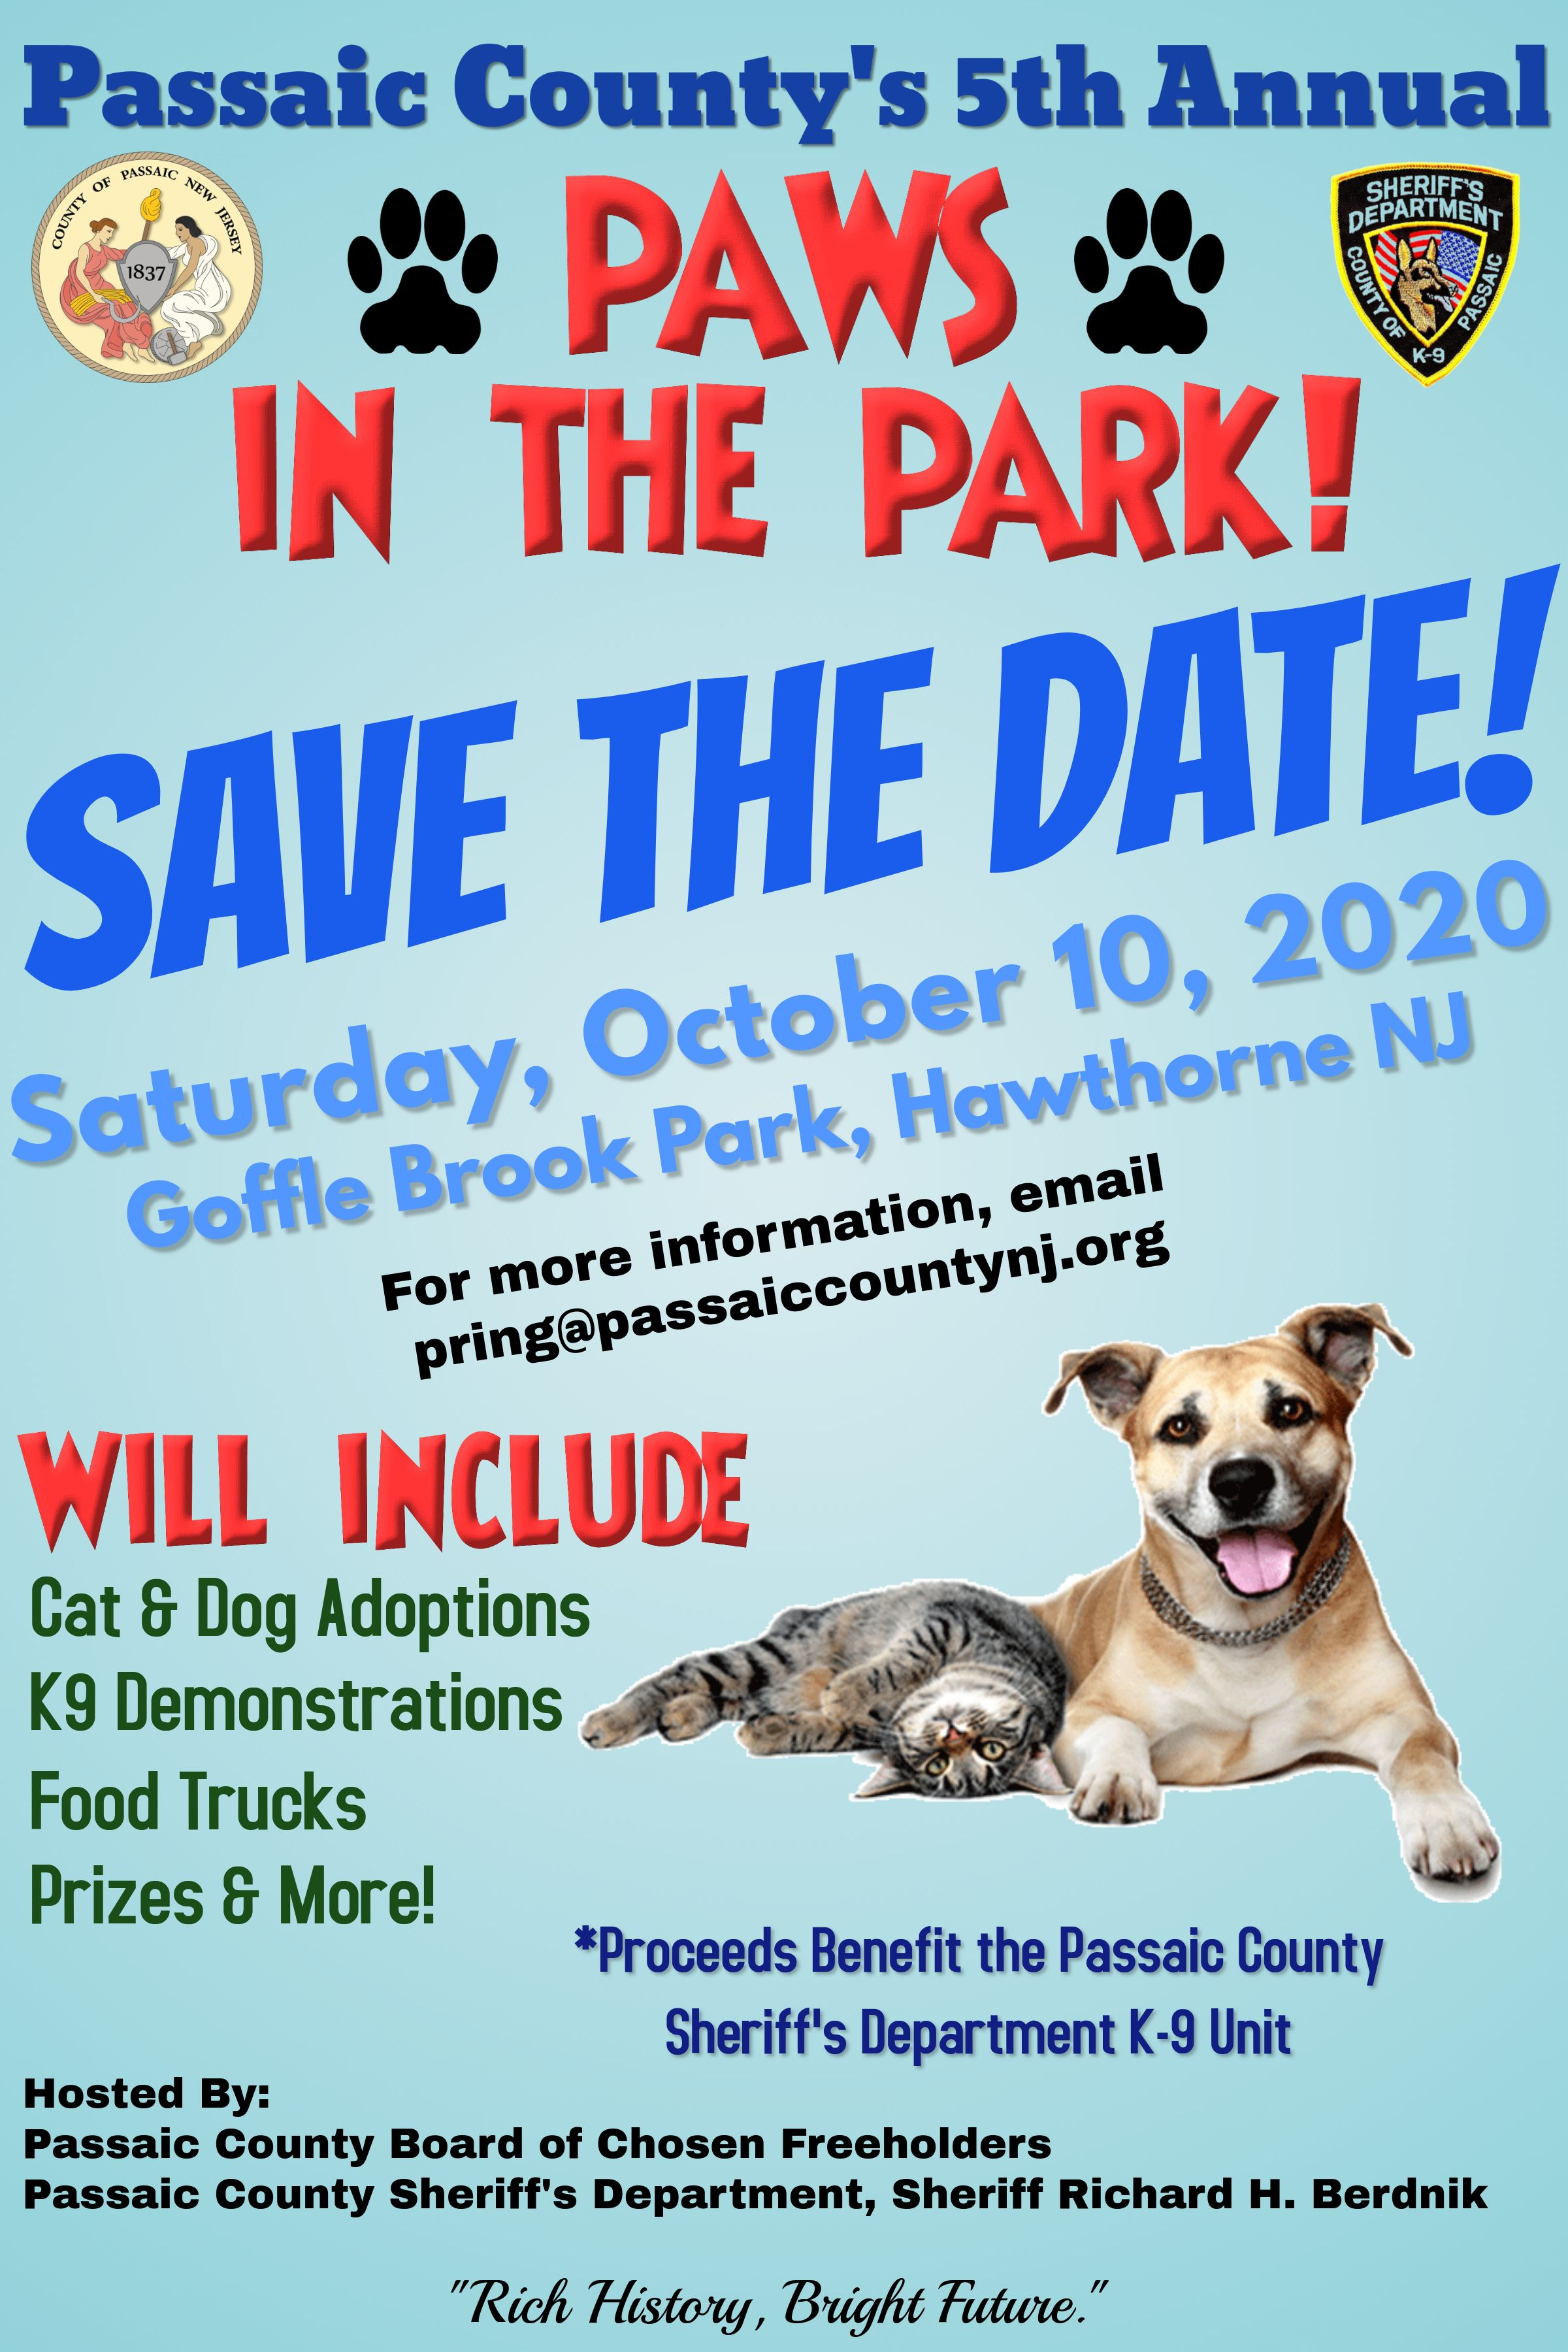 Passaic County's 5th Annual Paws In The Park!